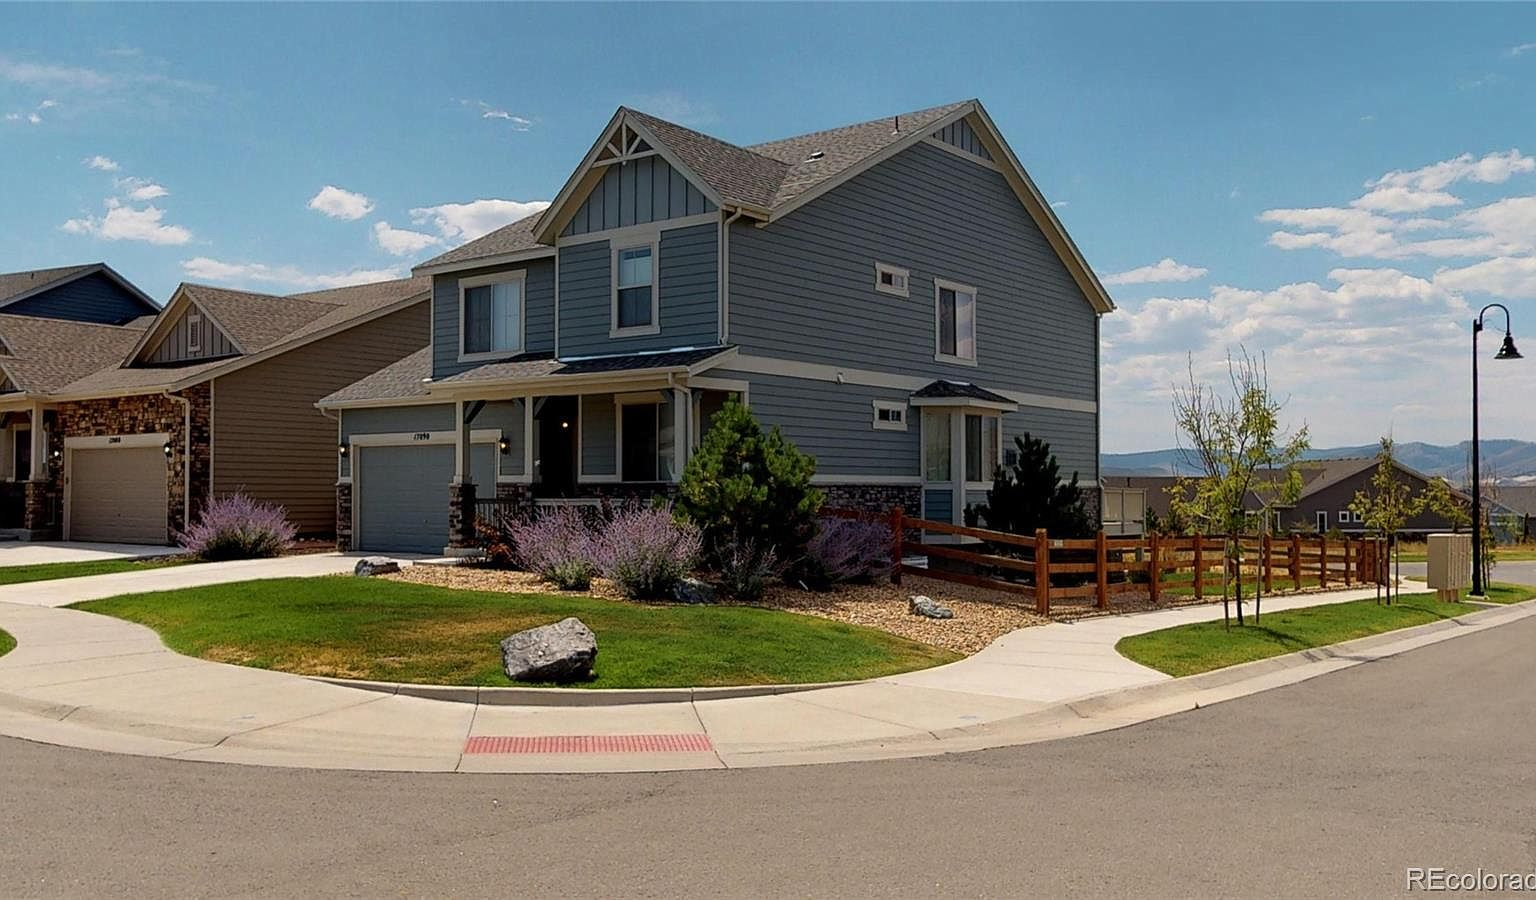 17090 W 86th Pl Arvada Co 80007 Zillow